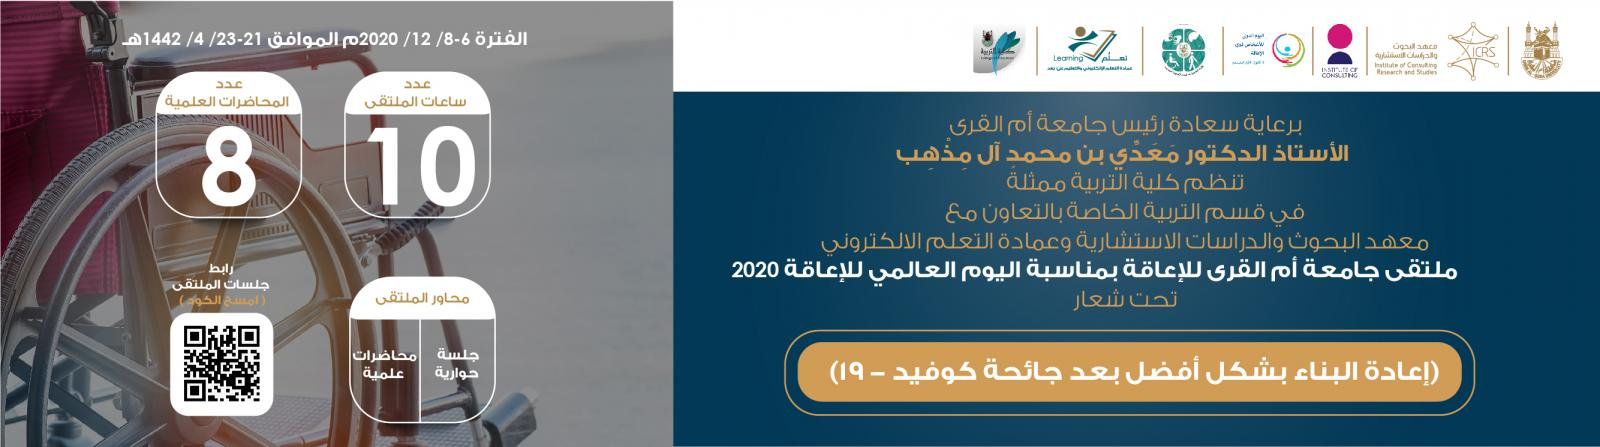 Umm Al-Qura University Forum on Disabilities